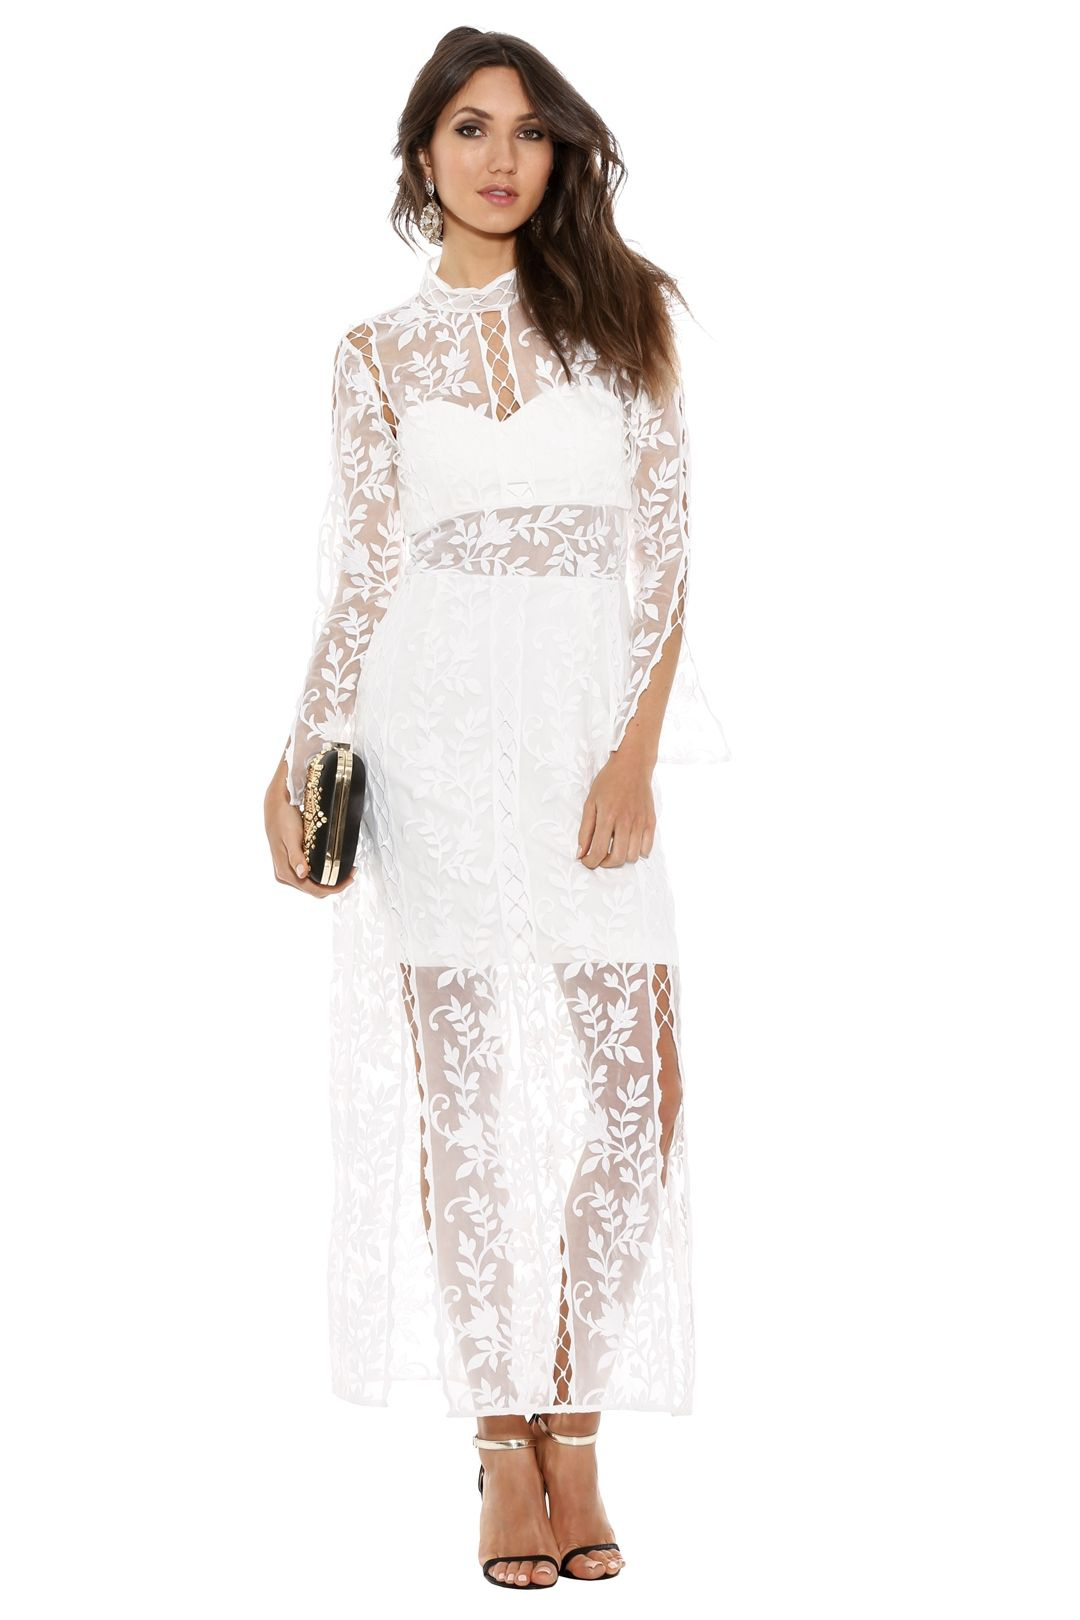 Thurley - Wisteria Dress - White - Front